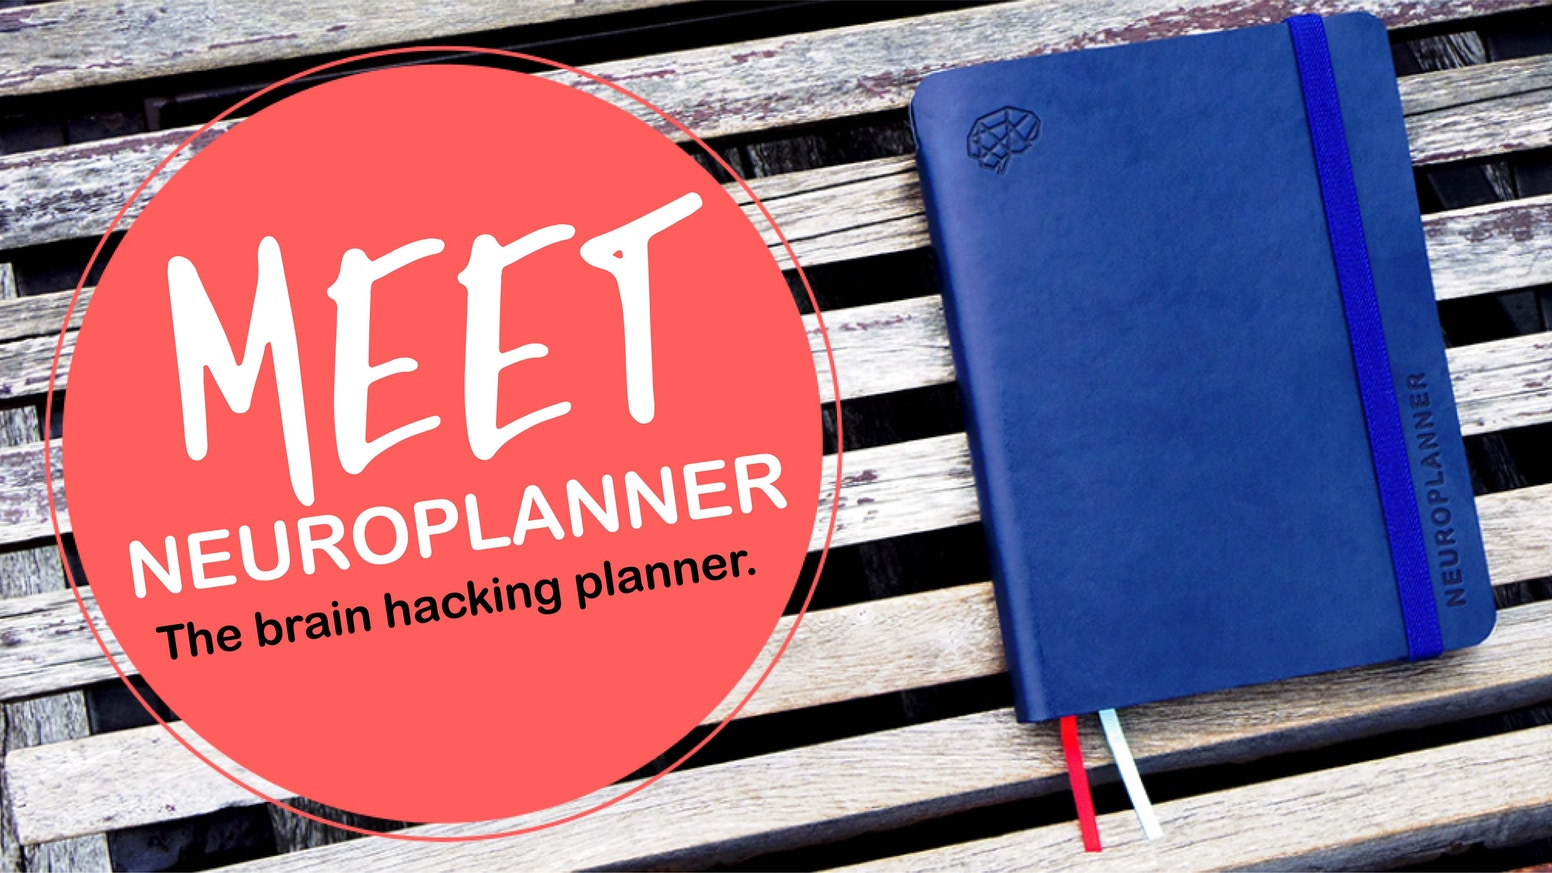 Missed our funding? PREORDER our planners available at Indiegogo at a lower price compared to retail stores. Until supplies last.